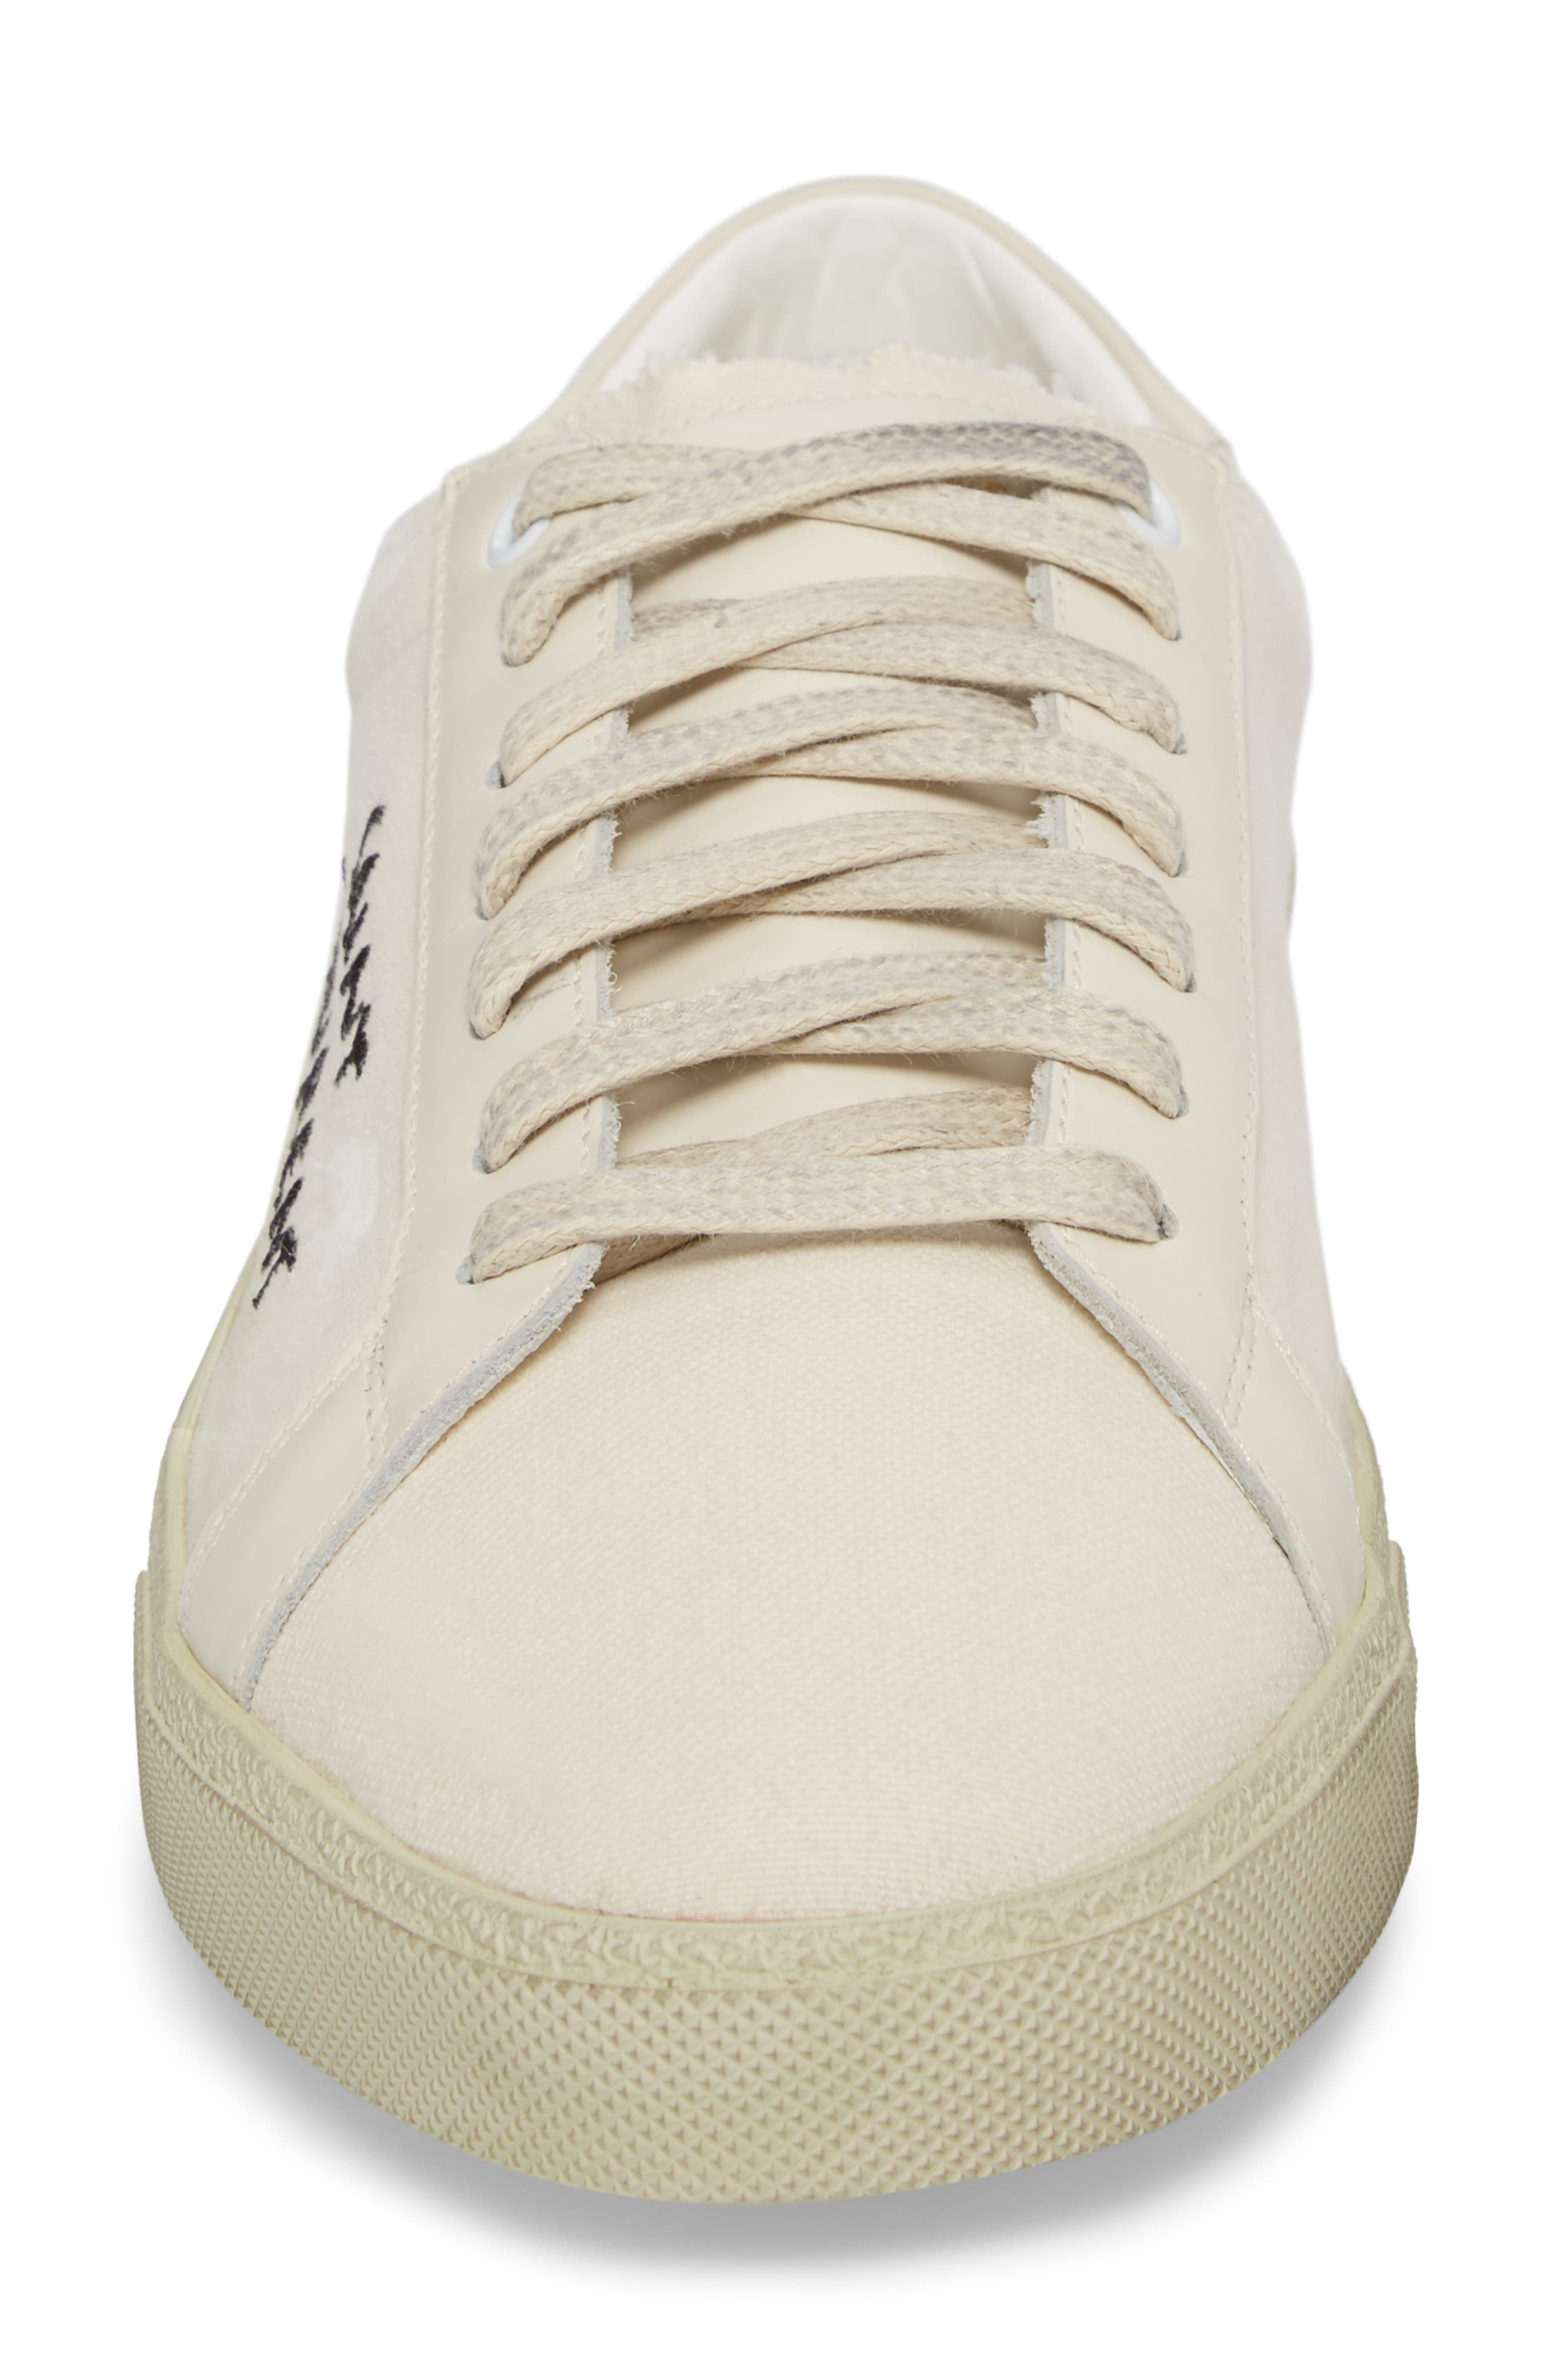 Embroidered Low Top Sneaker,                             Alternate thumbnail 4, color,                             Pesca